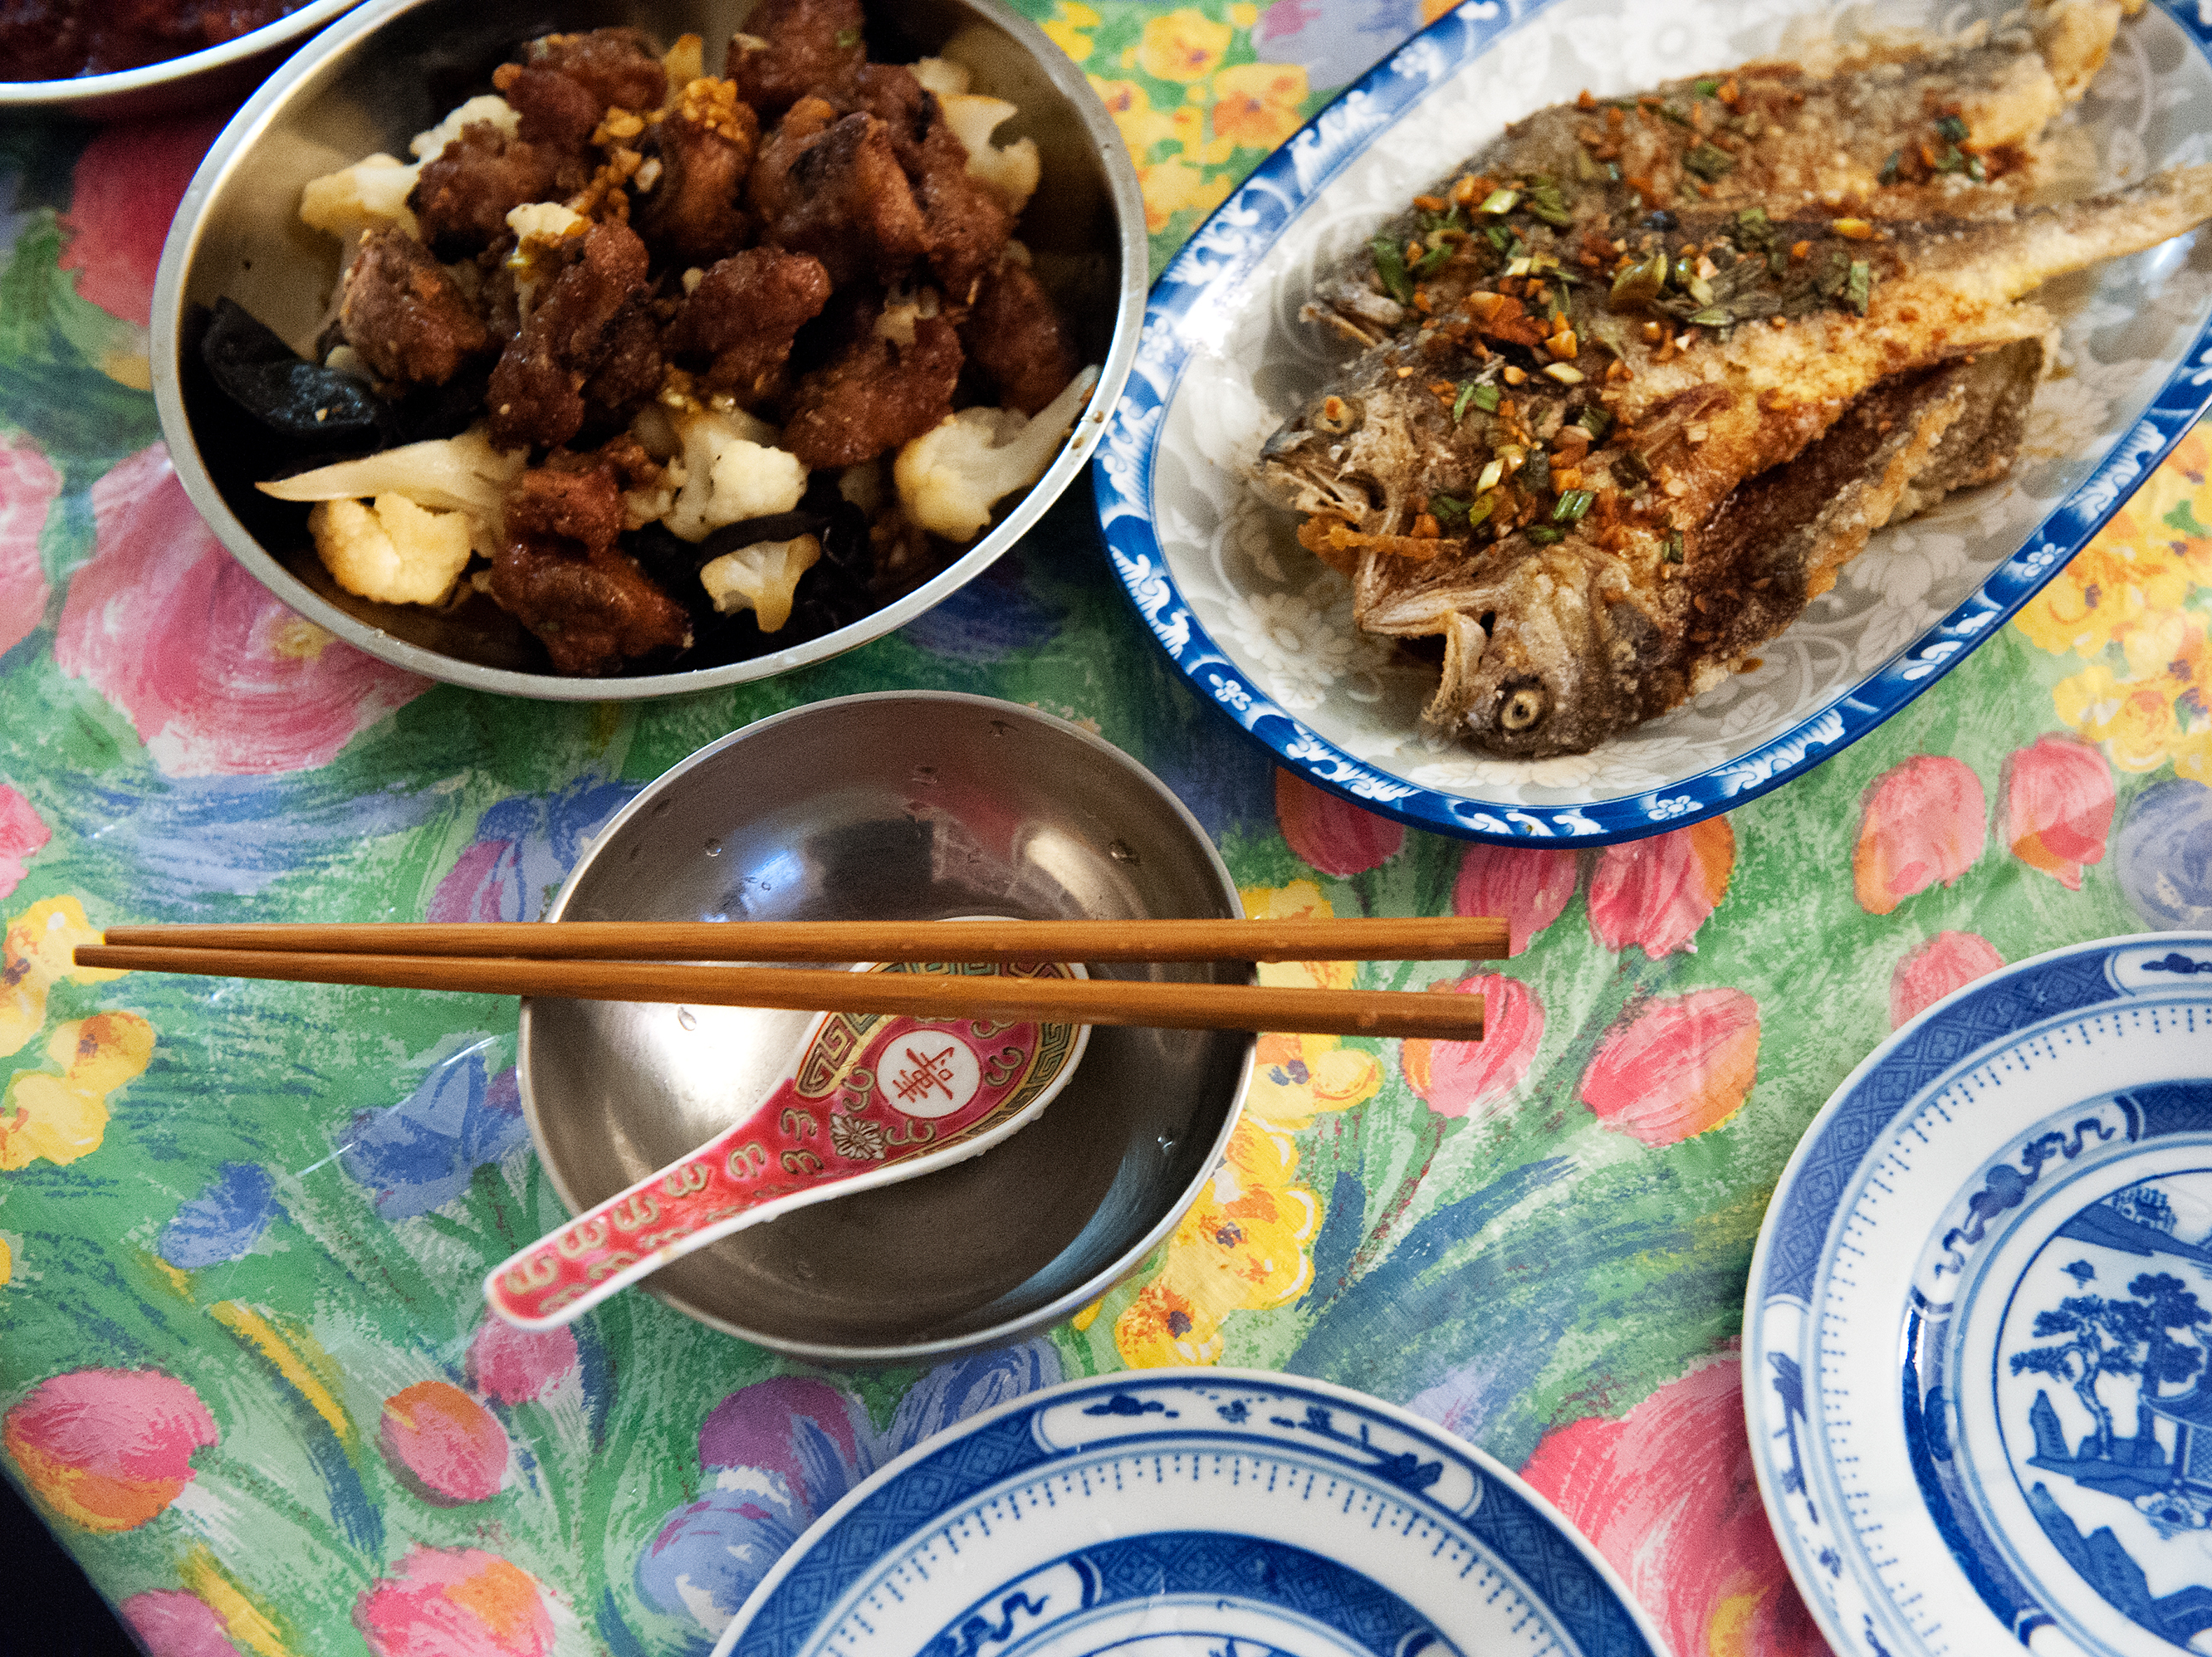 Plates of drunken pork ribs and deep-fried yellow croaker with savory soy sauce fill the dining table of Ni's home in New York City. Bryan Thomas for NPR